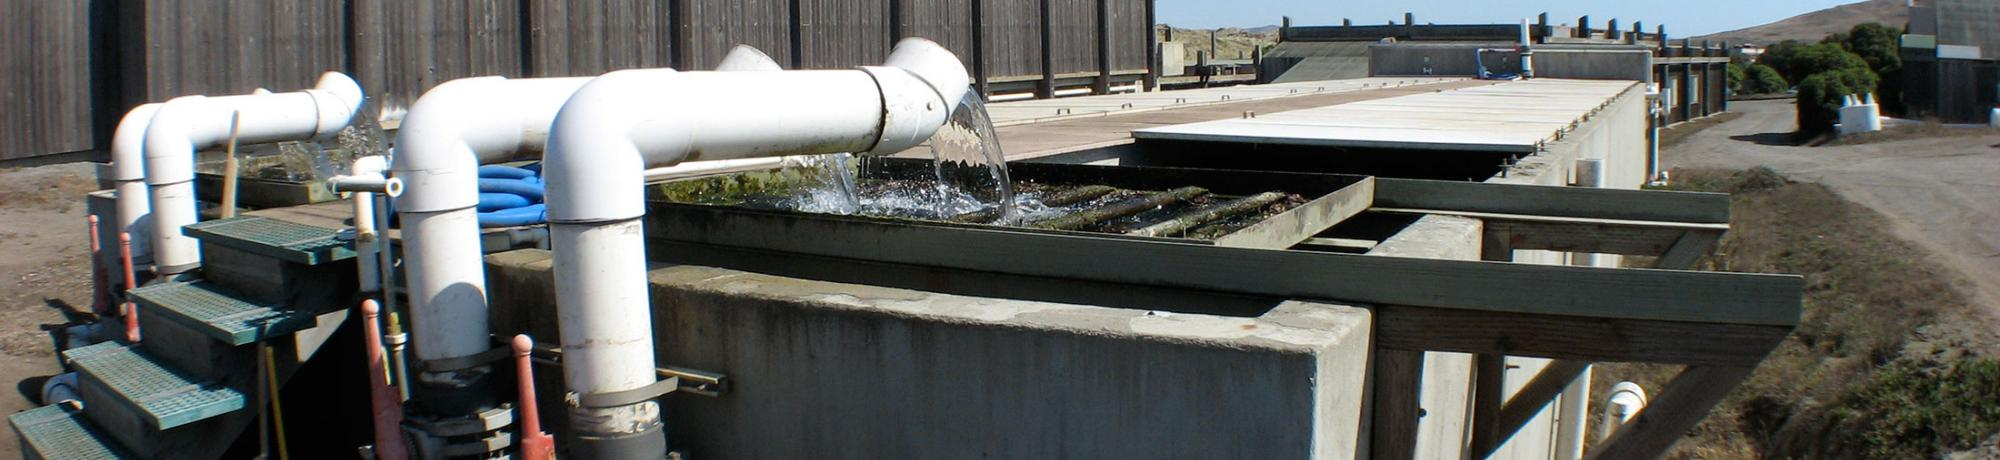 Seawater clarifier, the heart of BML's seawater system